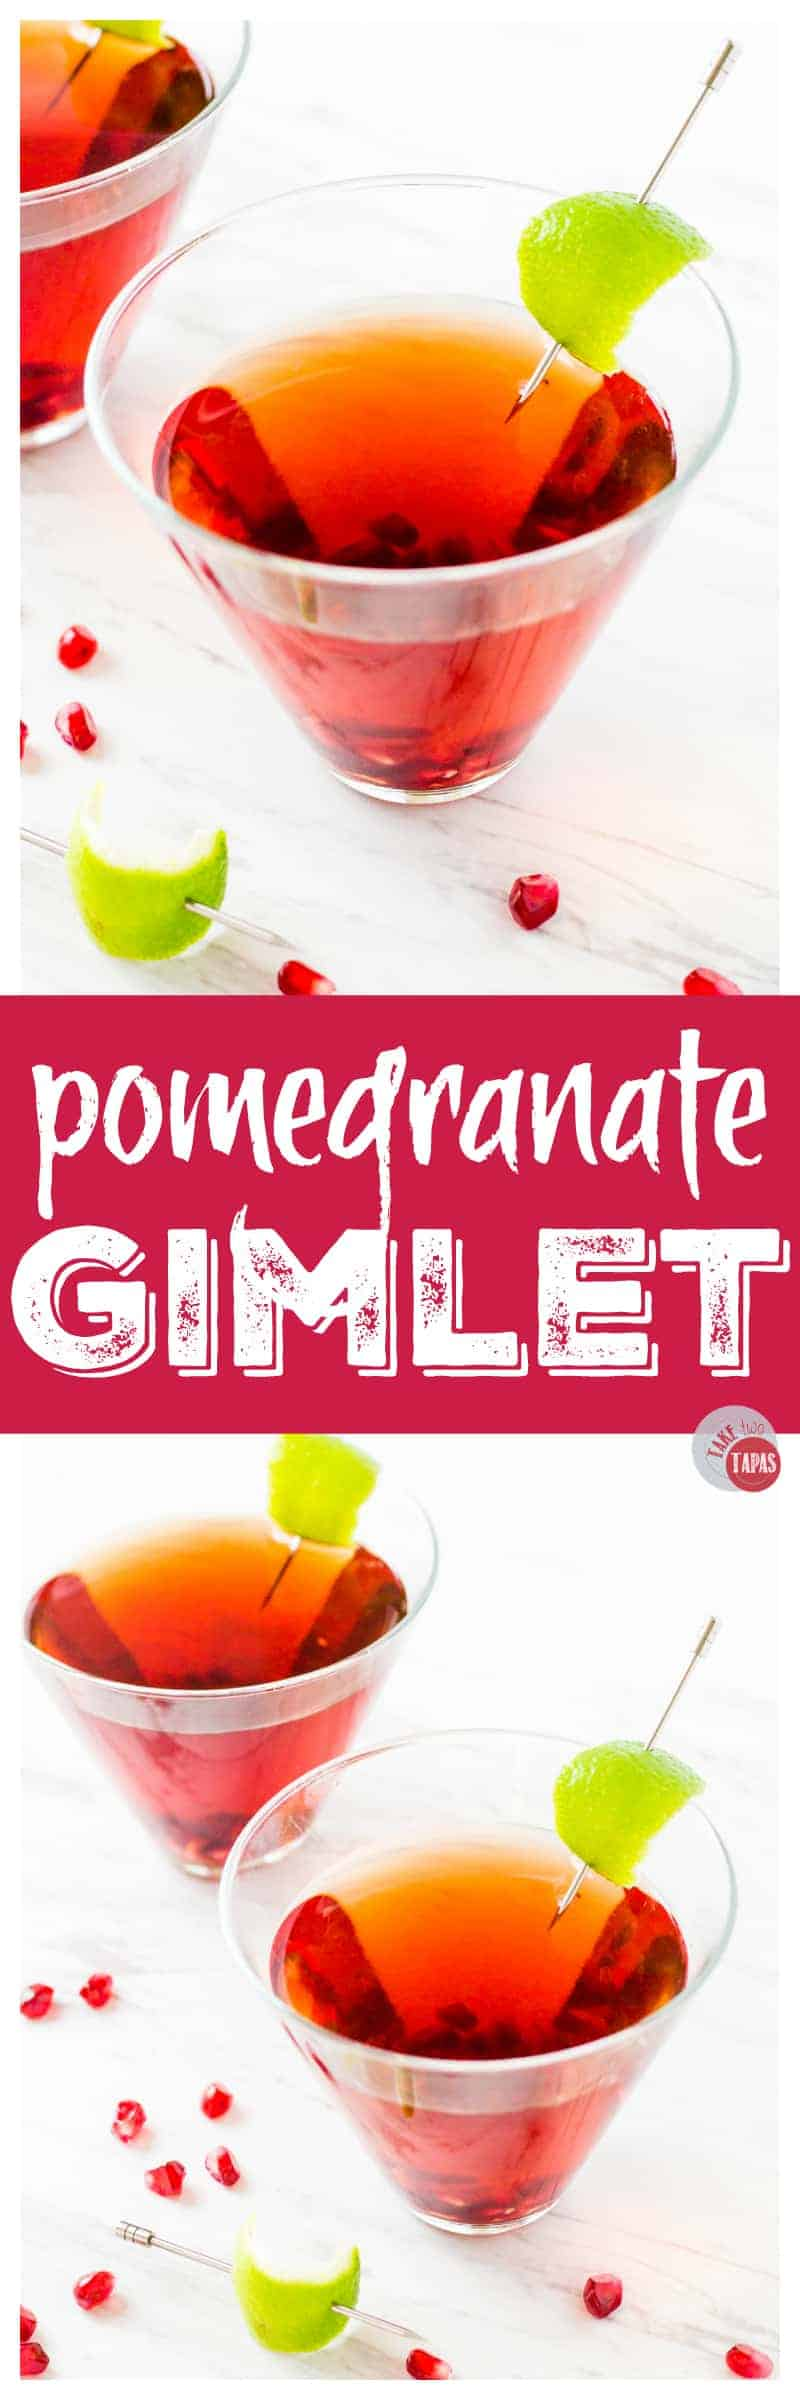 Grab this Pomegranate Gimlet and prepare for your holiday dinner with the in-laws! #TakeTwoTapas #Pomegranate #Gimlet